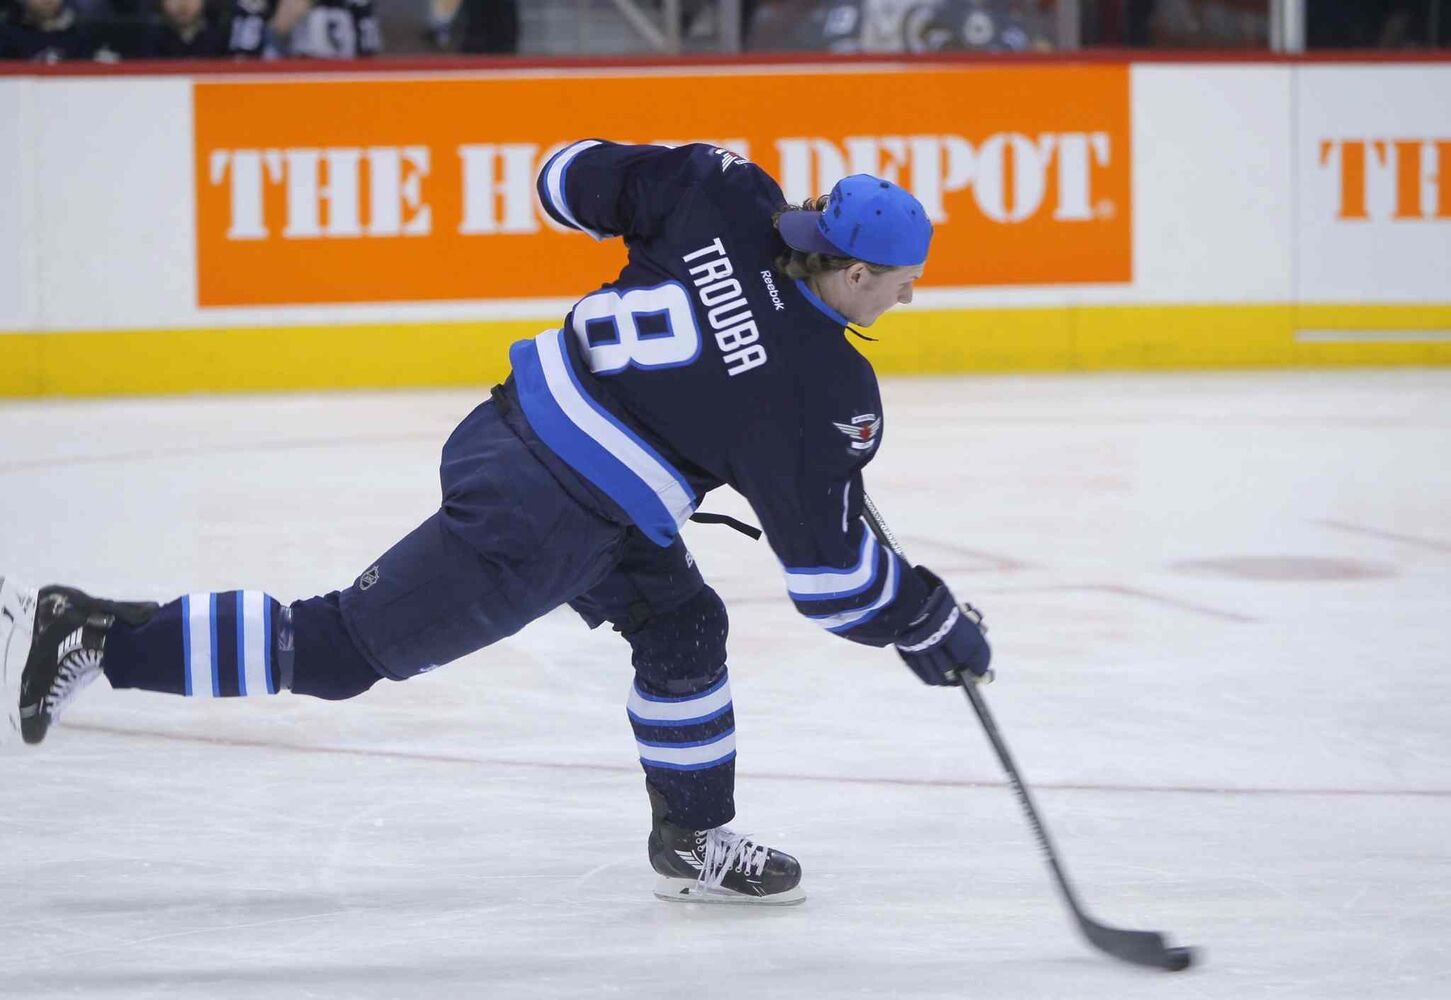 Defenceman Jacob Trouba unloads during the hardest shot portion of the skills competition. (Boris Minkevich / Winnipeg Free Press)